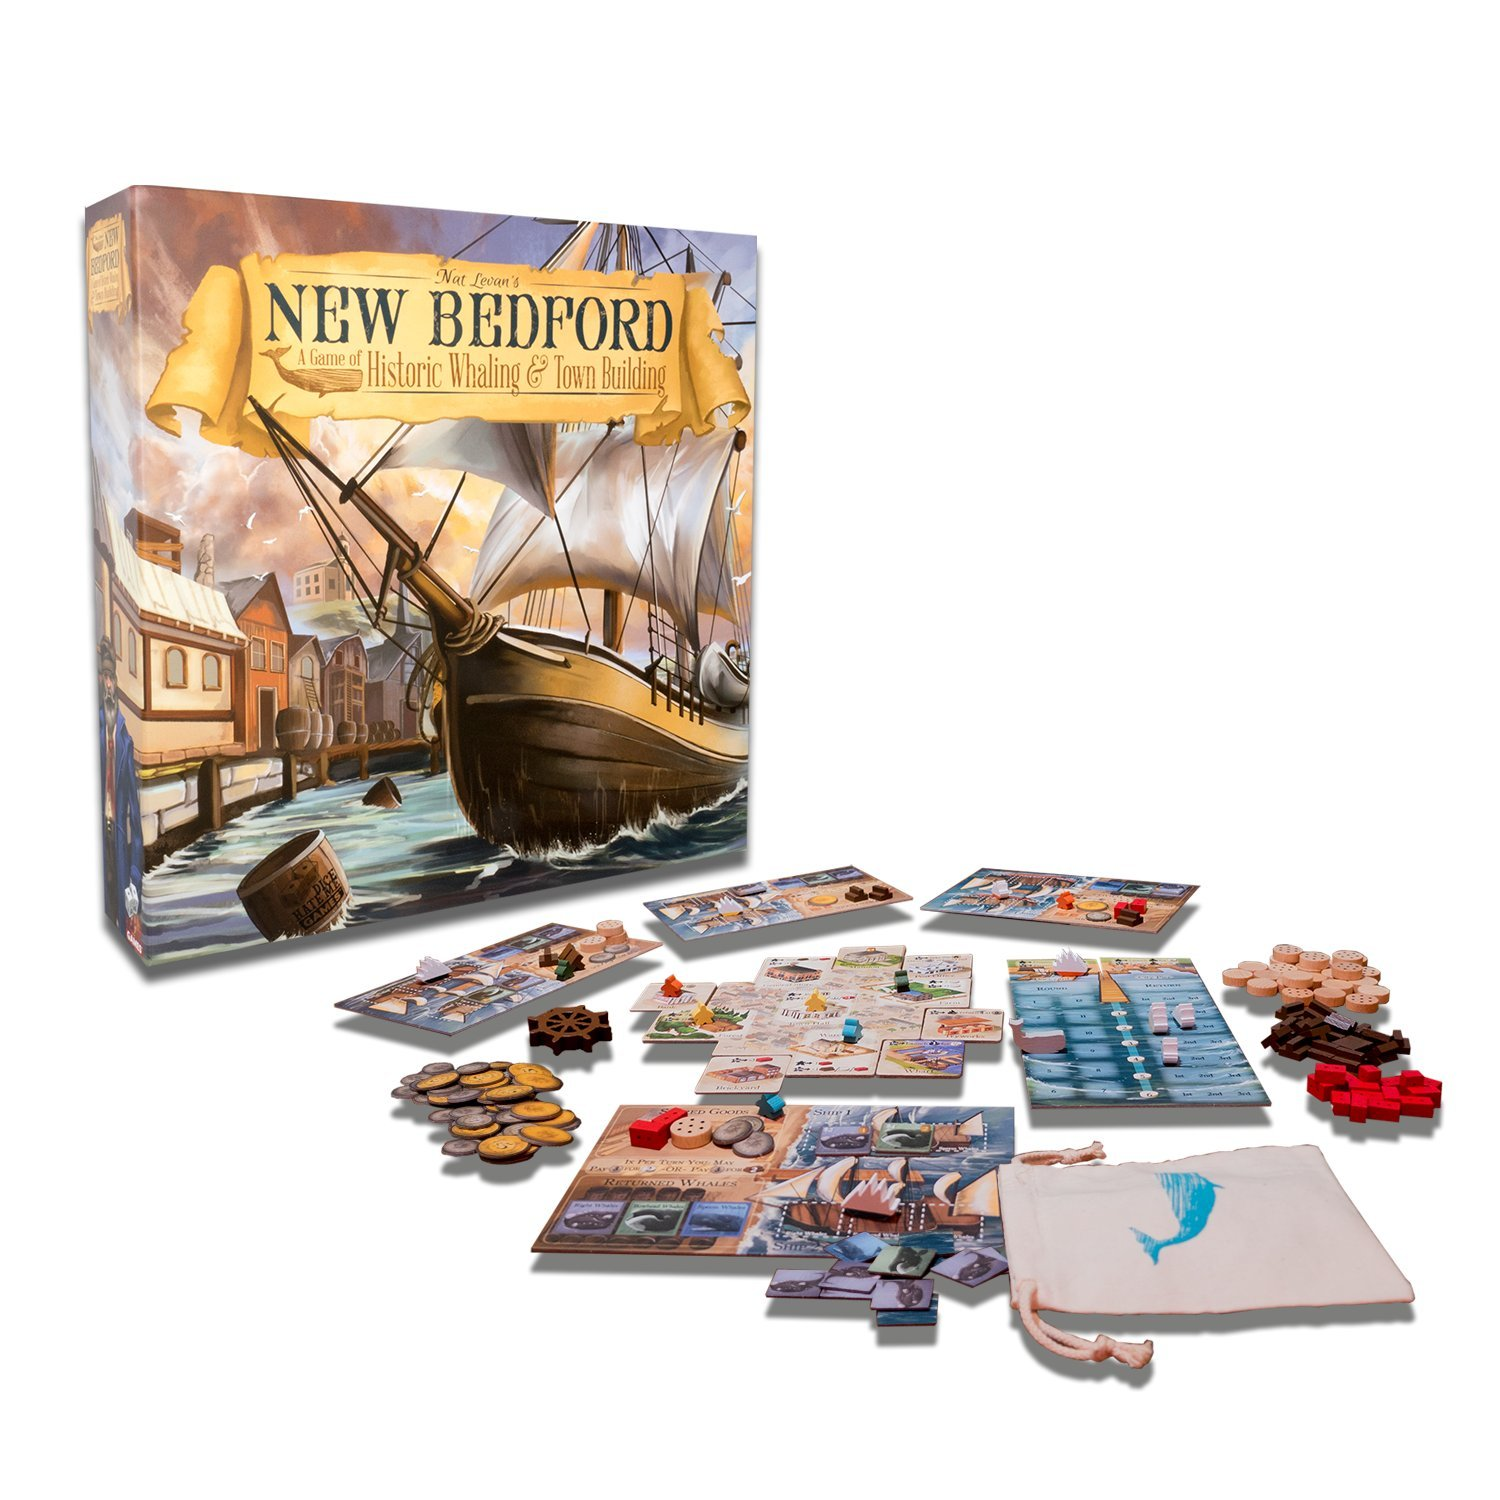 Amazon.com: Greater Than Games New Bedford Rising Tide Expansion Board Game: Toys & Games